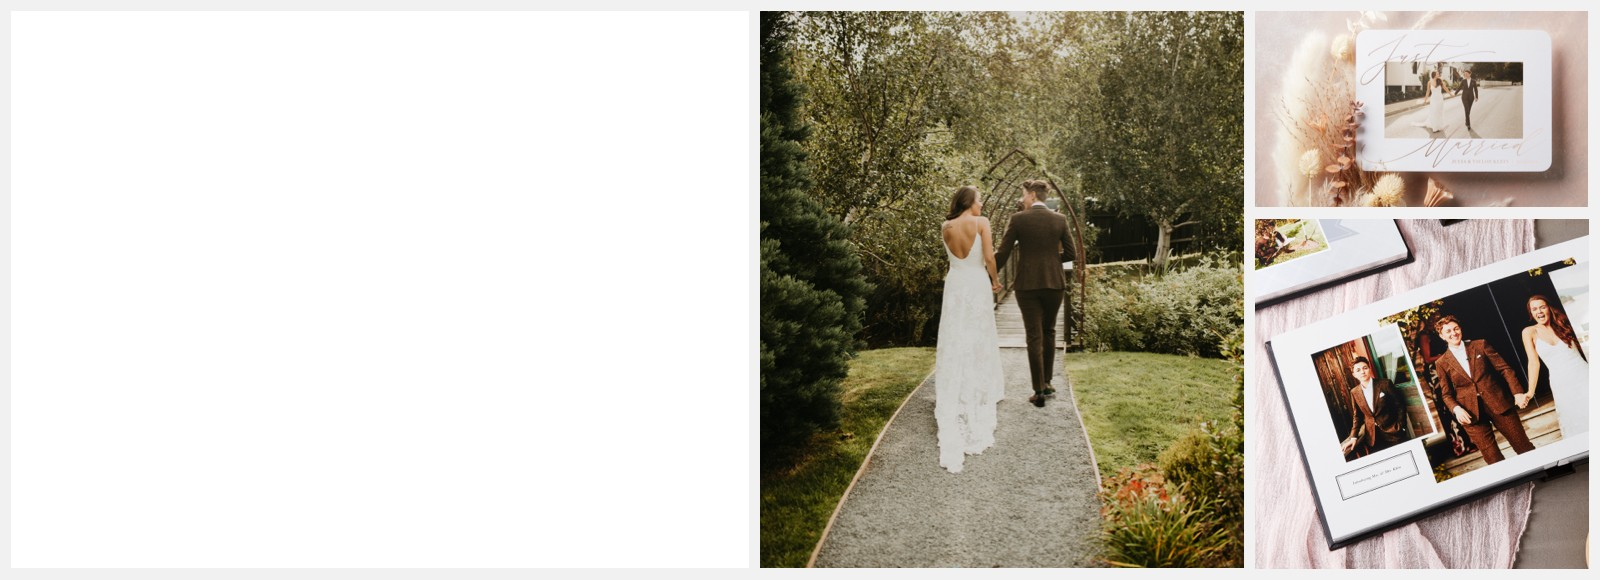 planning an elopement with elopement cards and gift